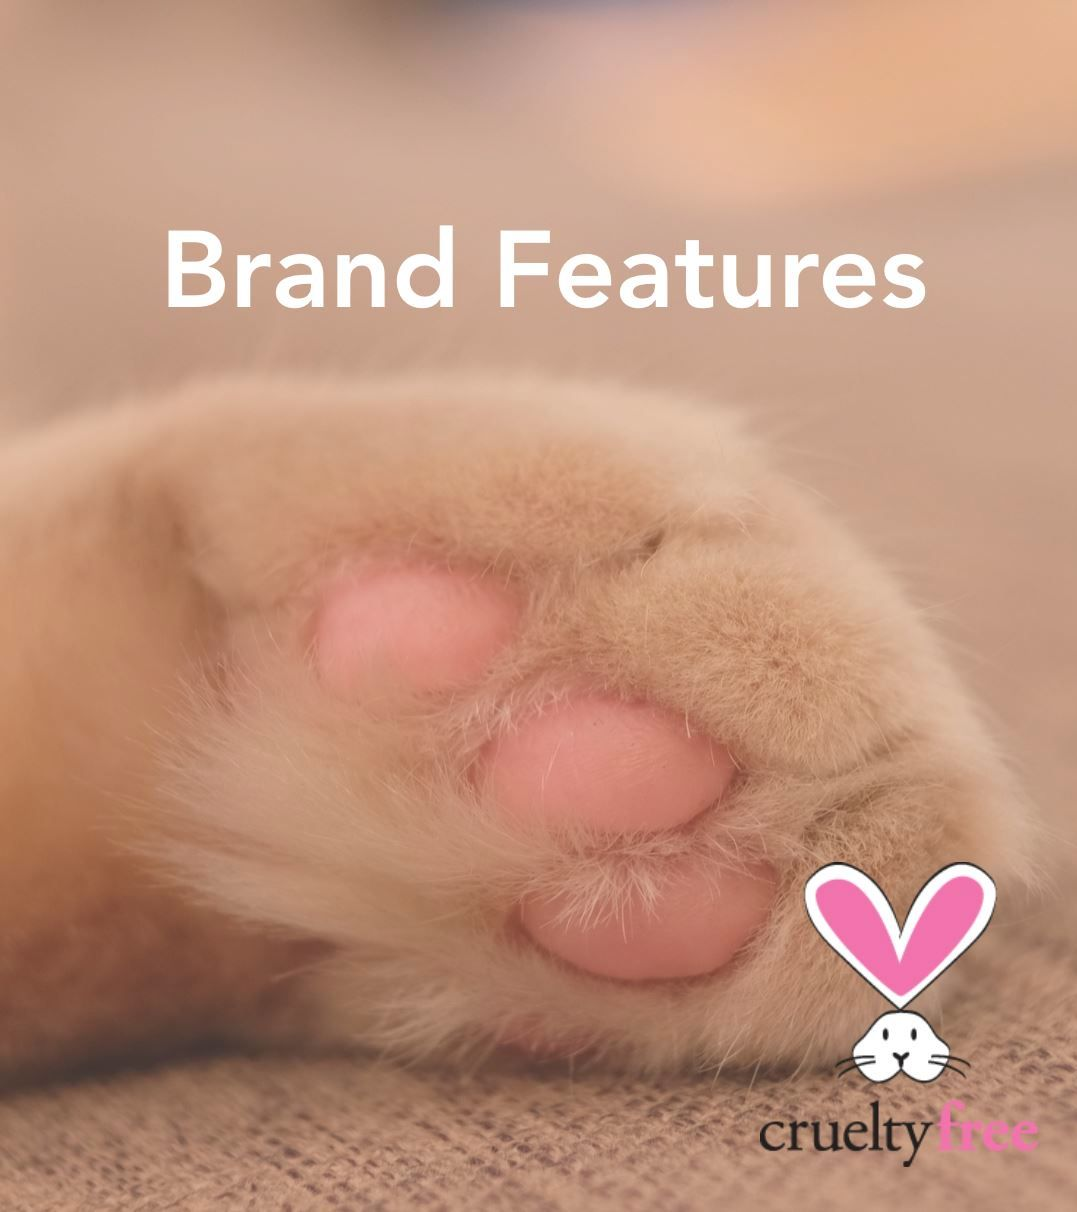 Brand Features - Browse brands according to your values, lifestyle choices or dietary needs